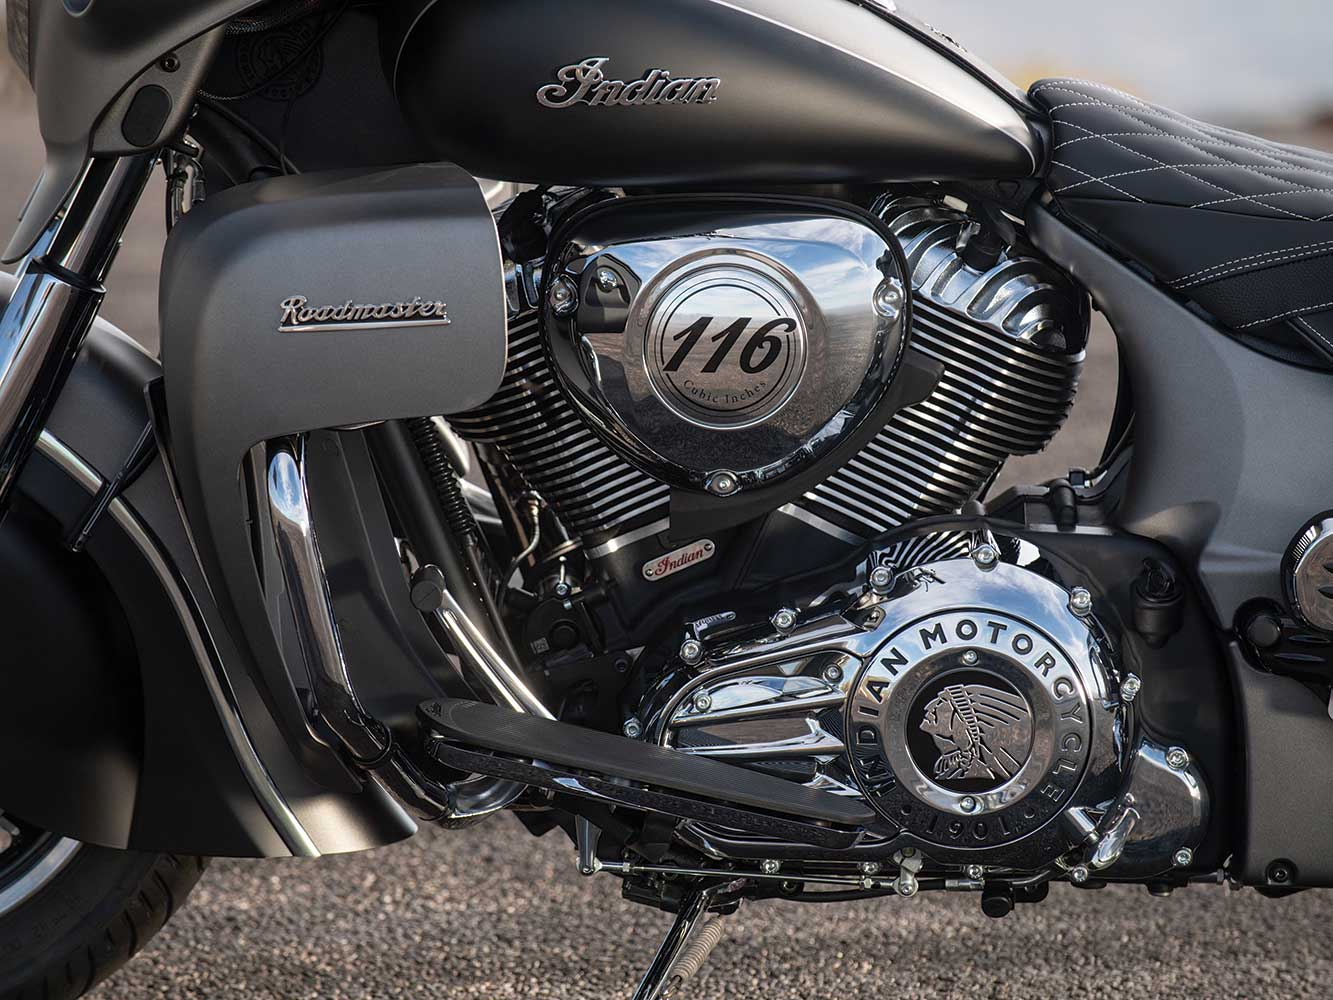 First look: Indian Motorcycle's 2020 Thunder Stroke